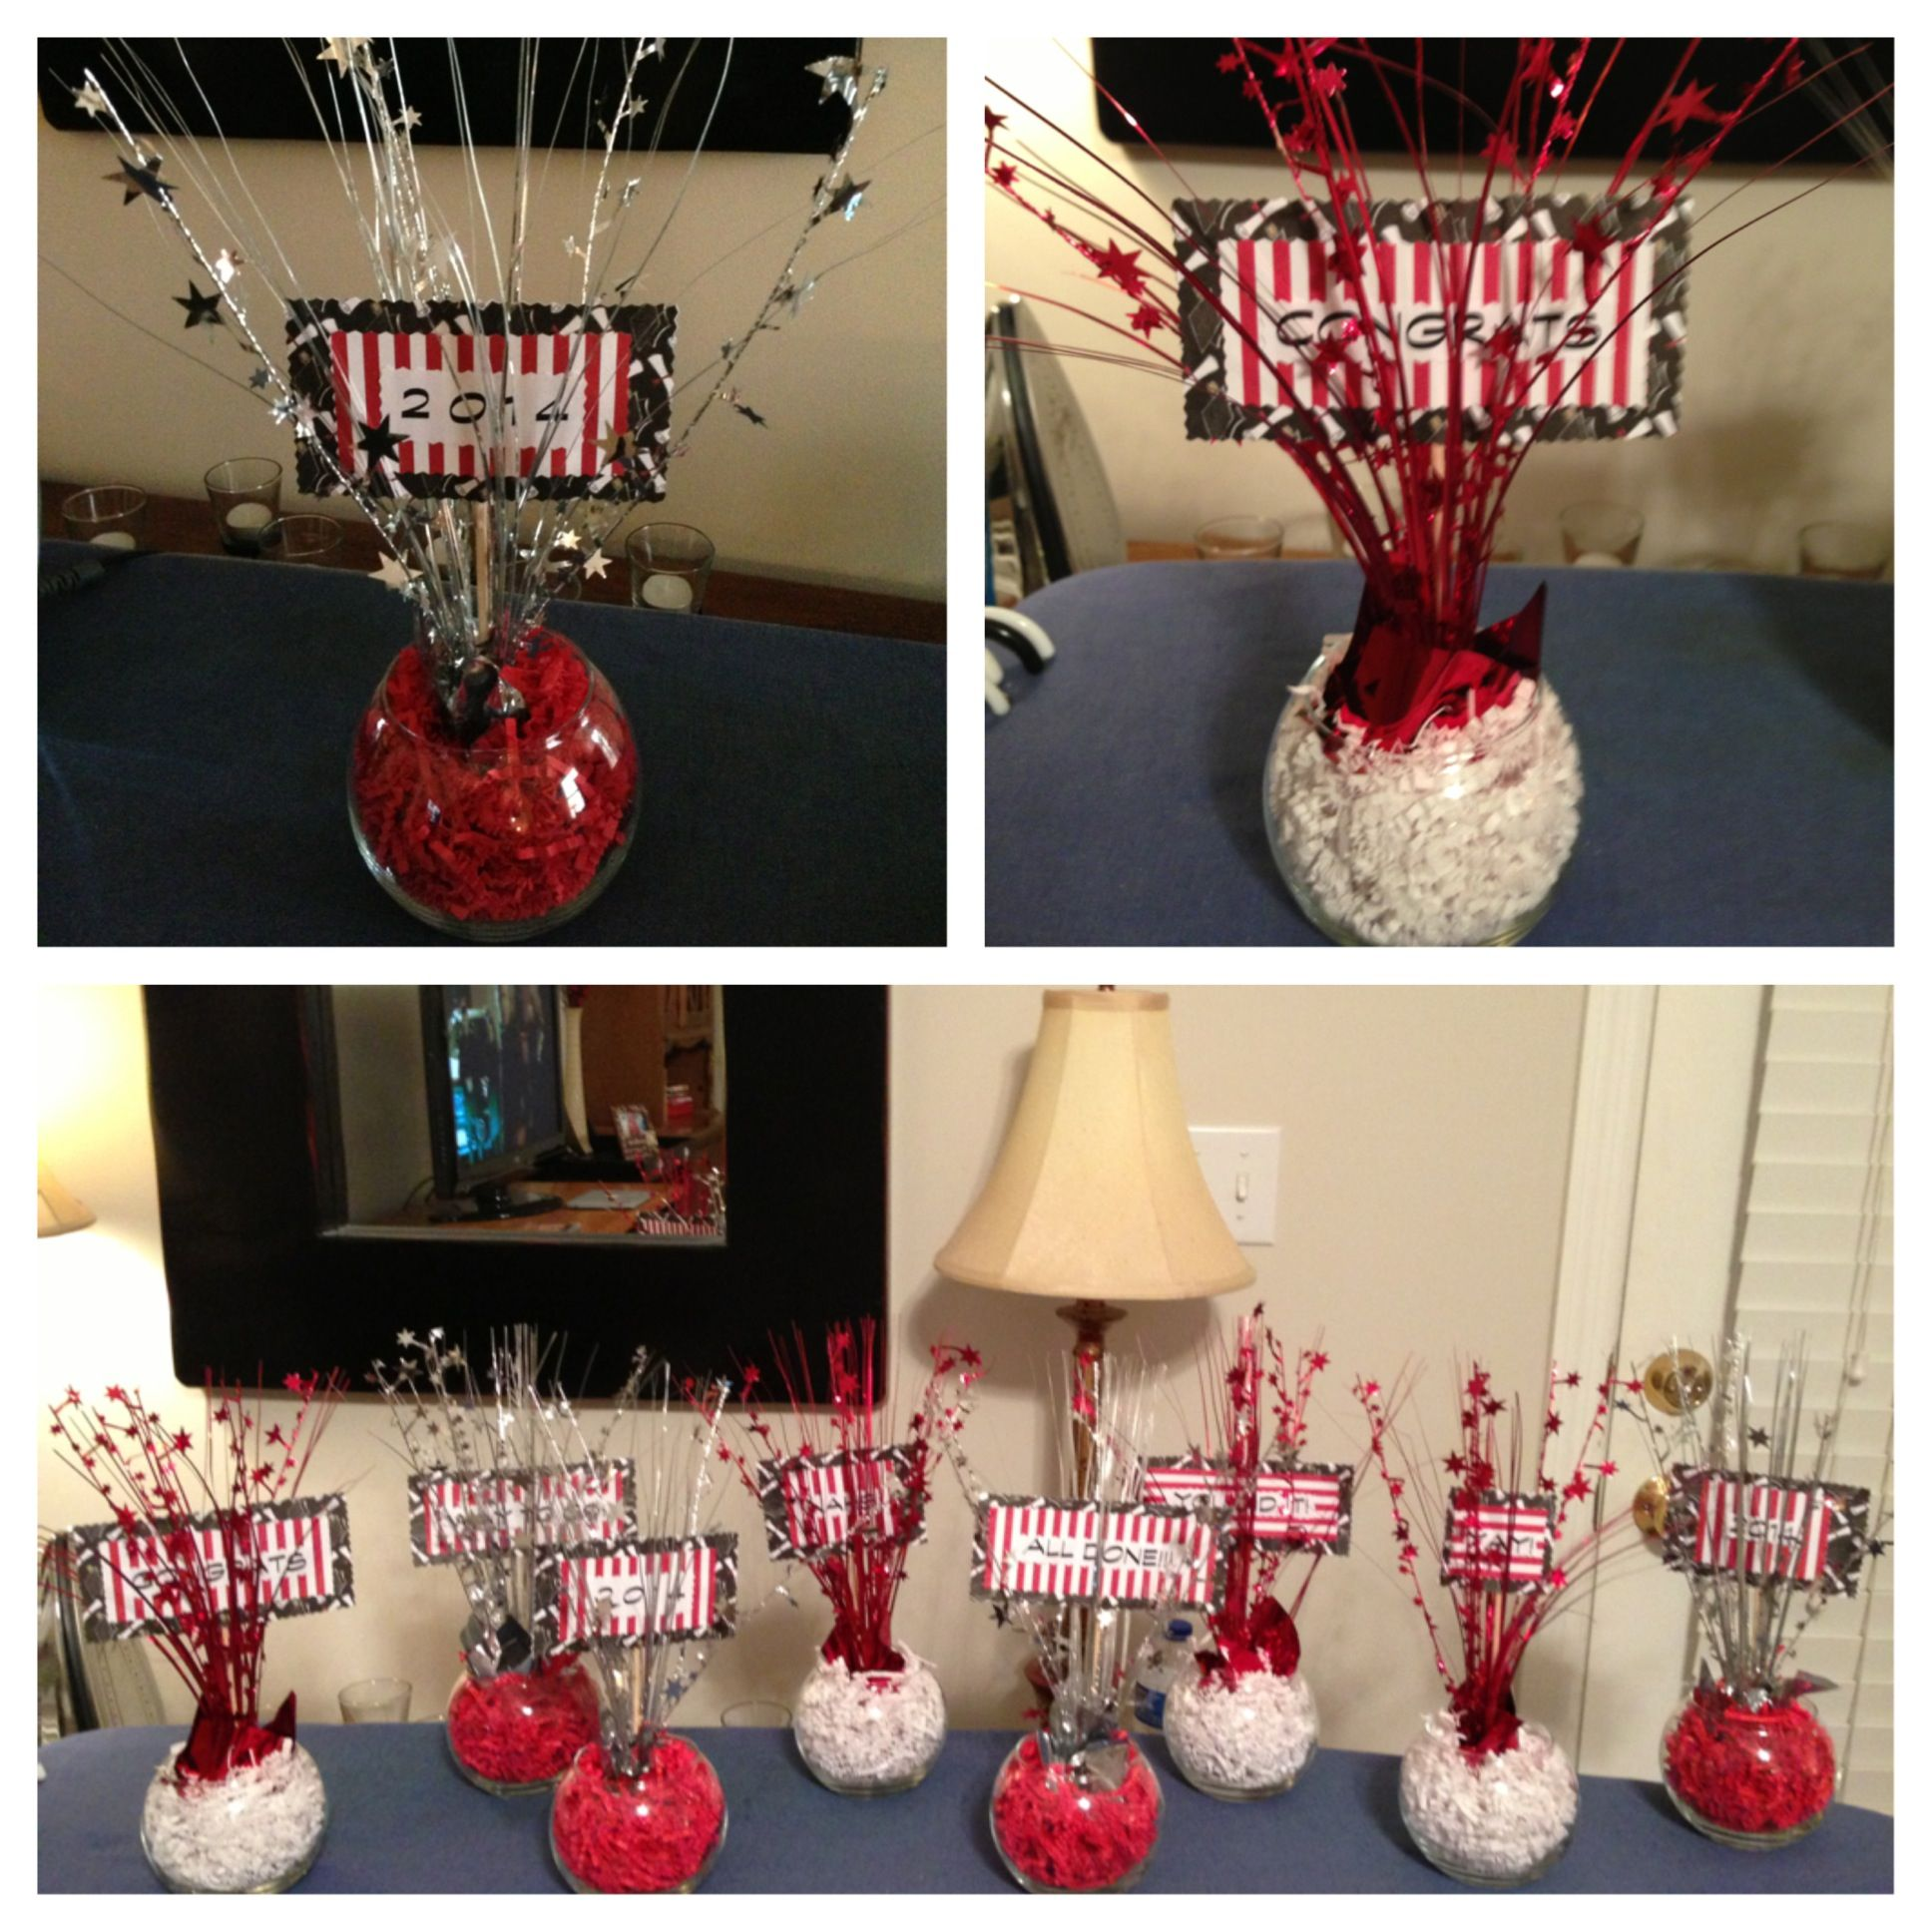 Graduation Centerpieces In Black, Red And White. (My Own